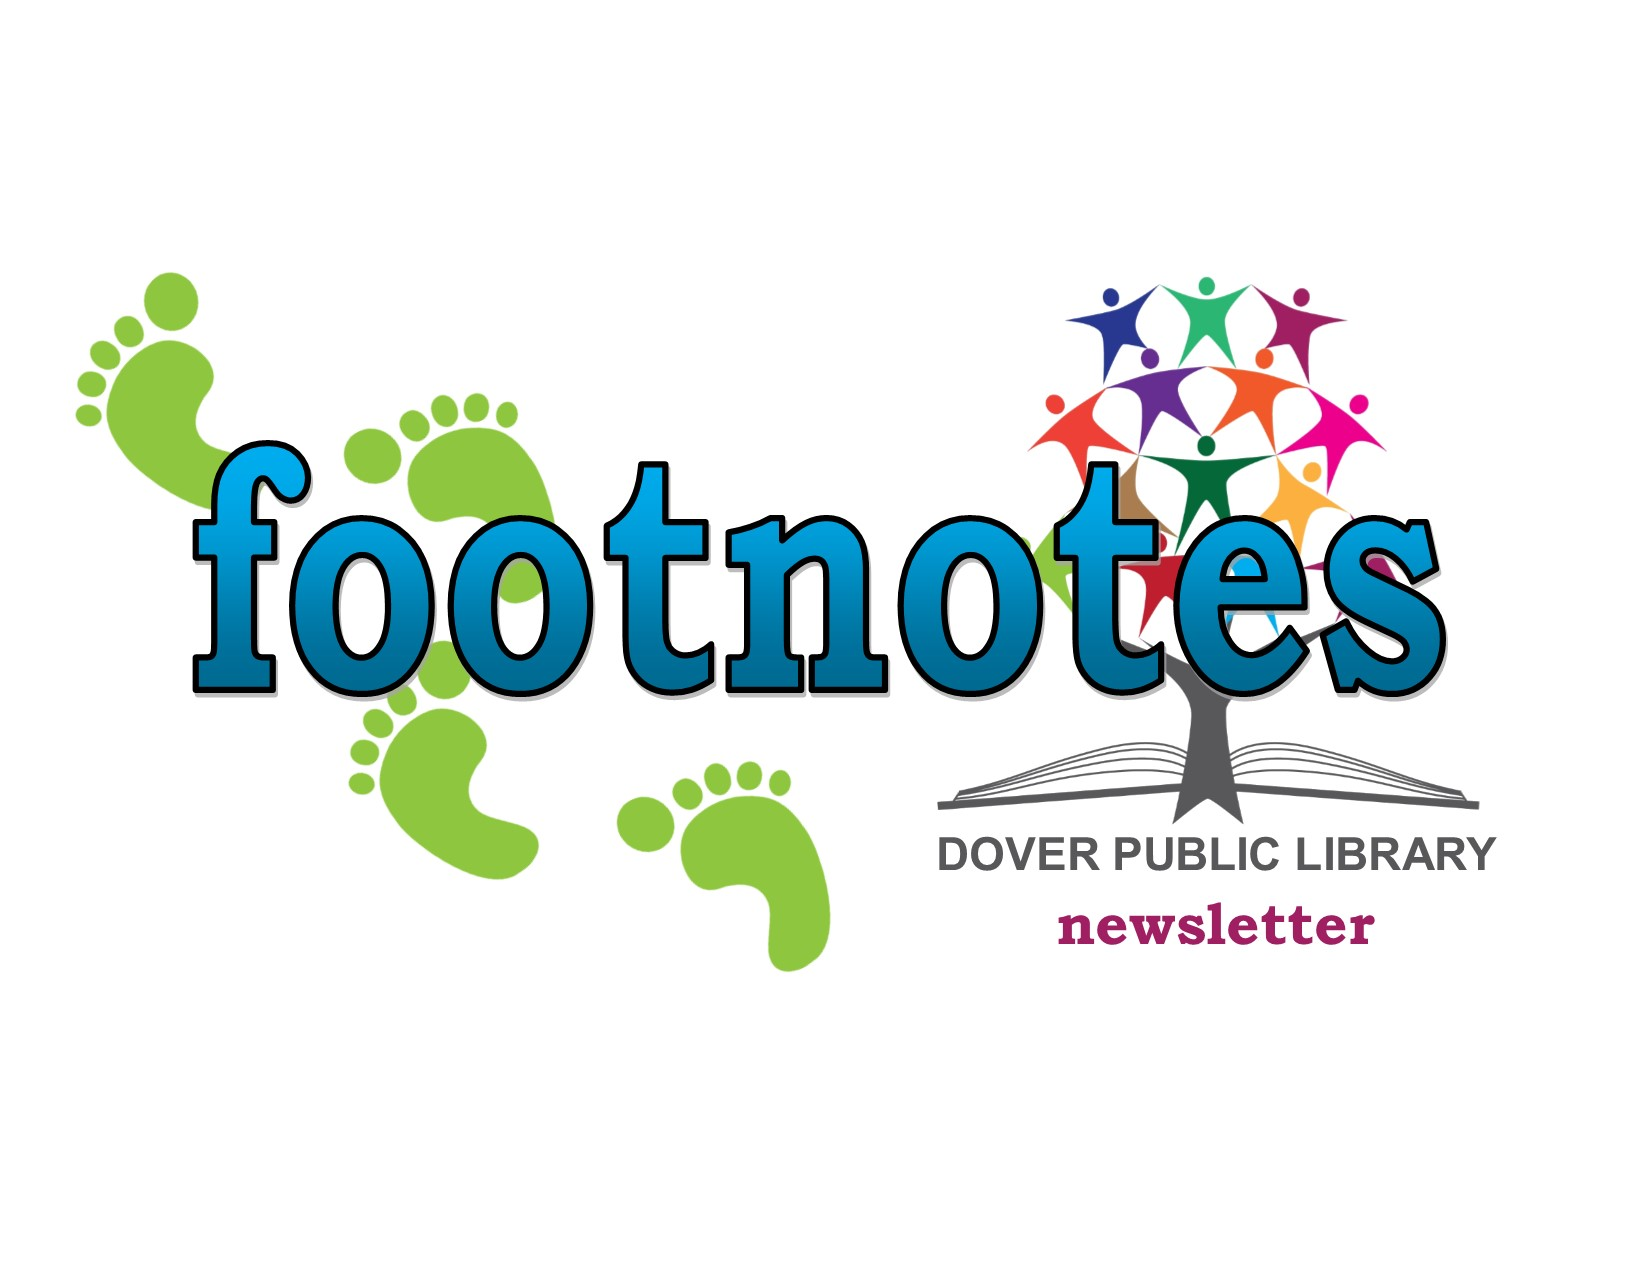 Footnotes the Dover Public Library newsletter logo